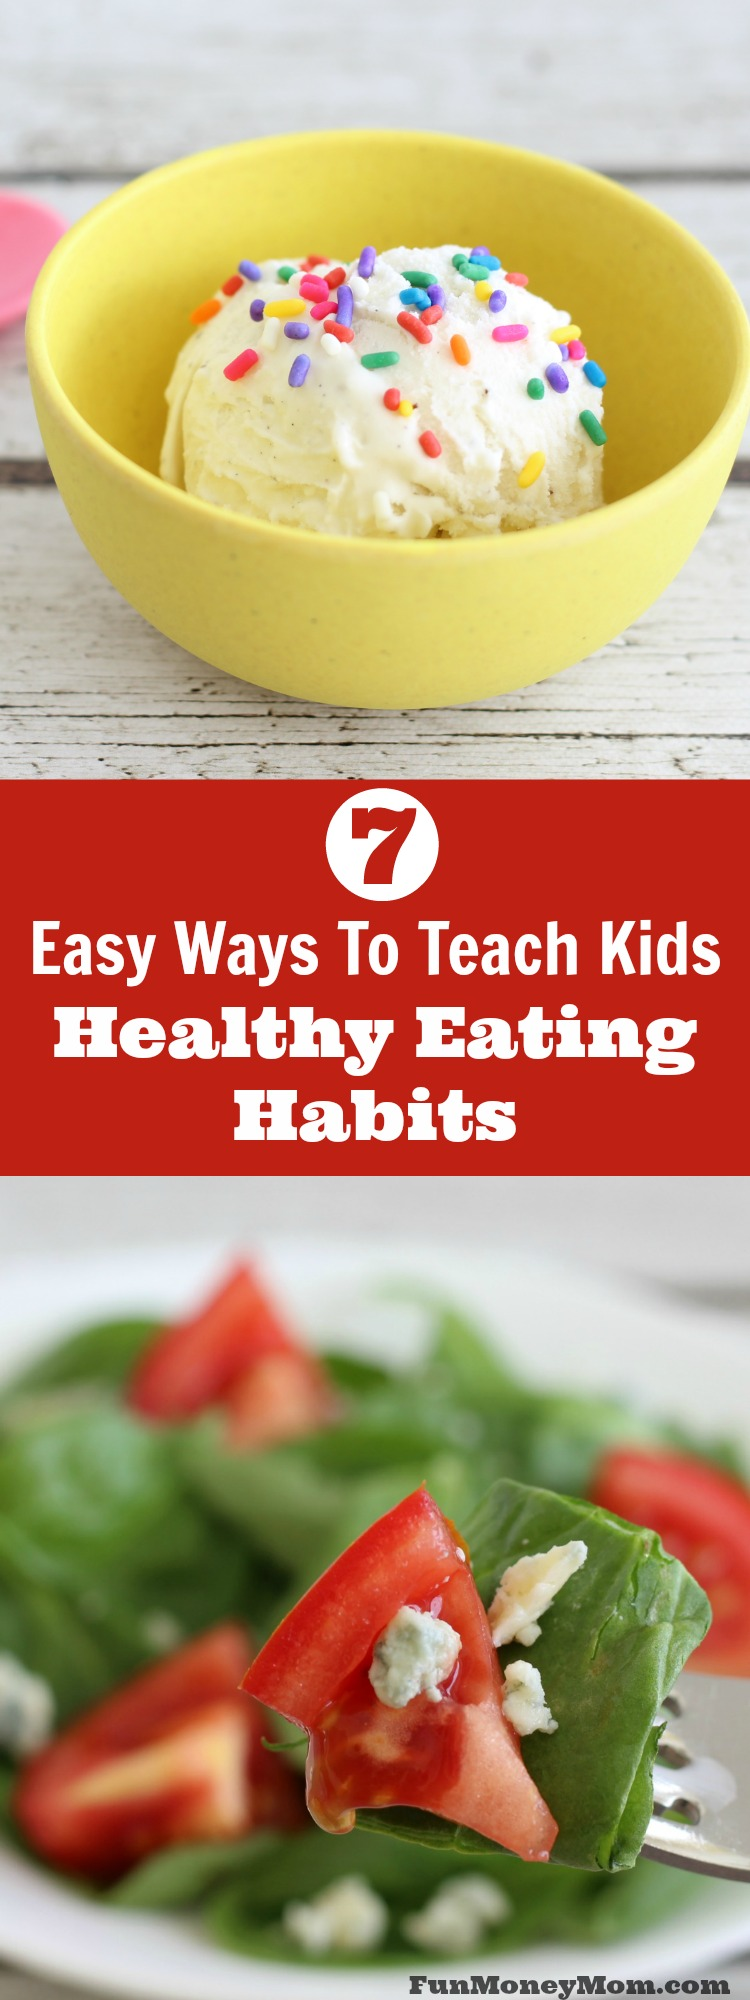 Having trouble getting the kids to eat their veggies? These easy tips will have them wanting to show off their healthy eating habits!